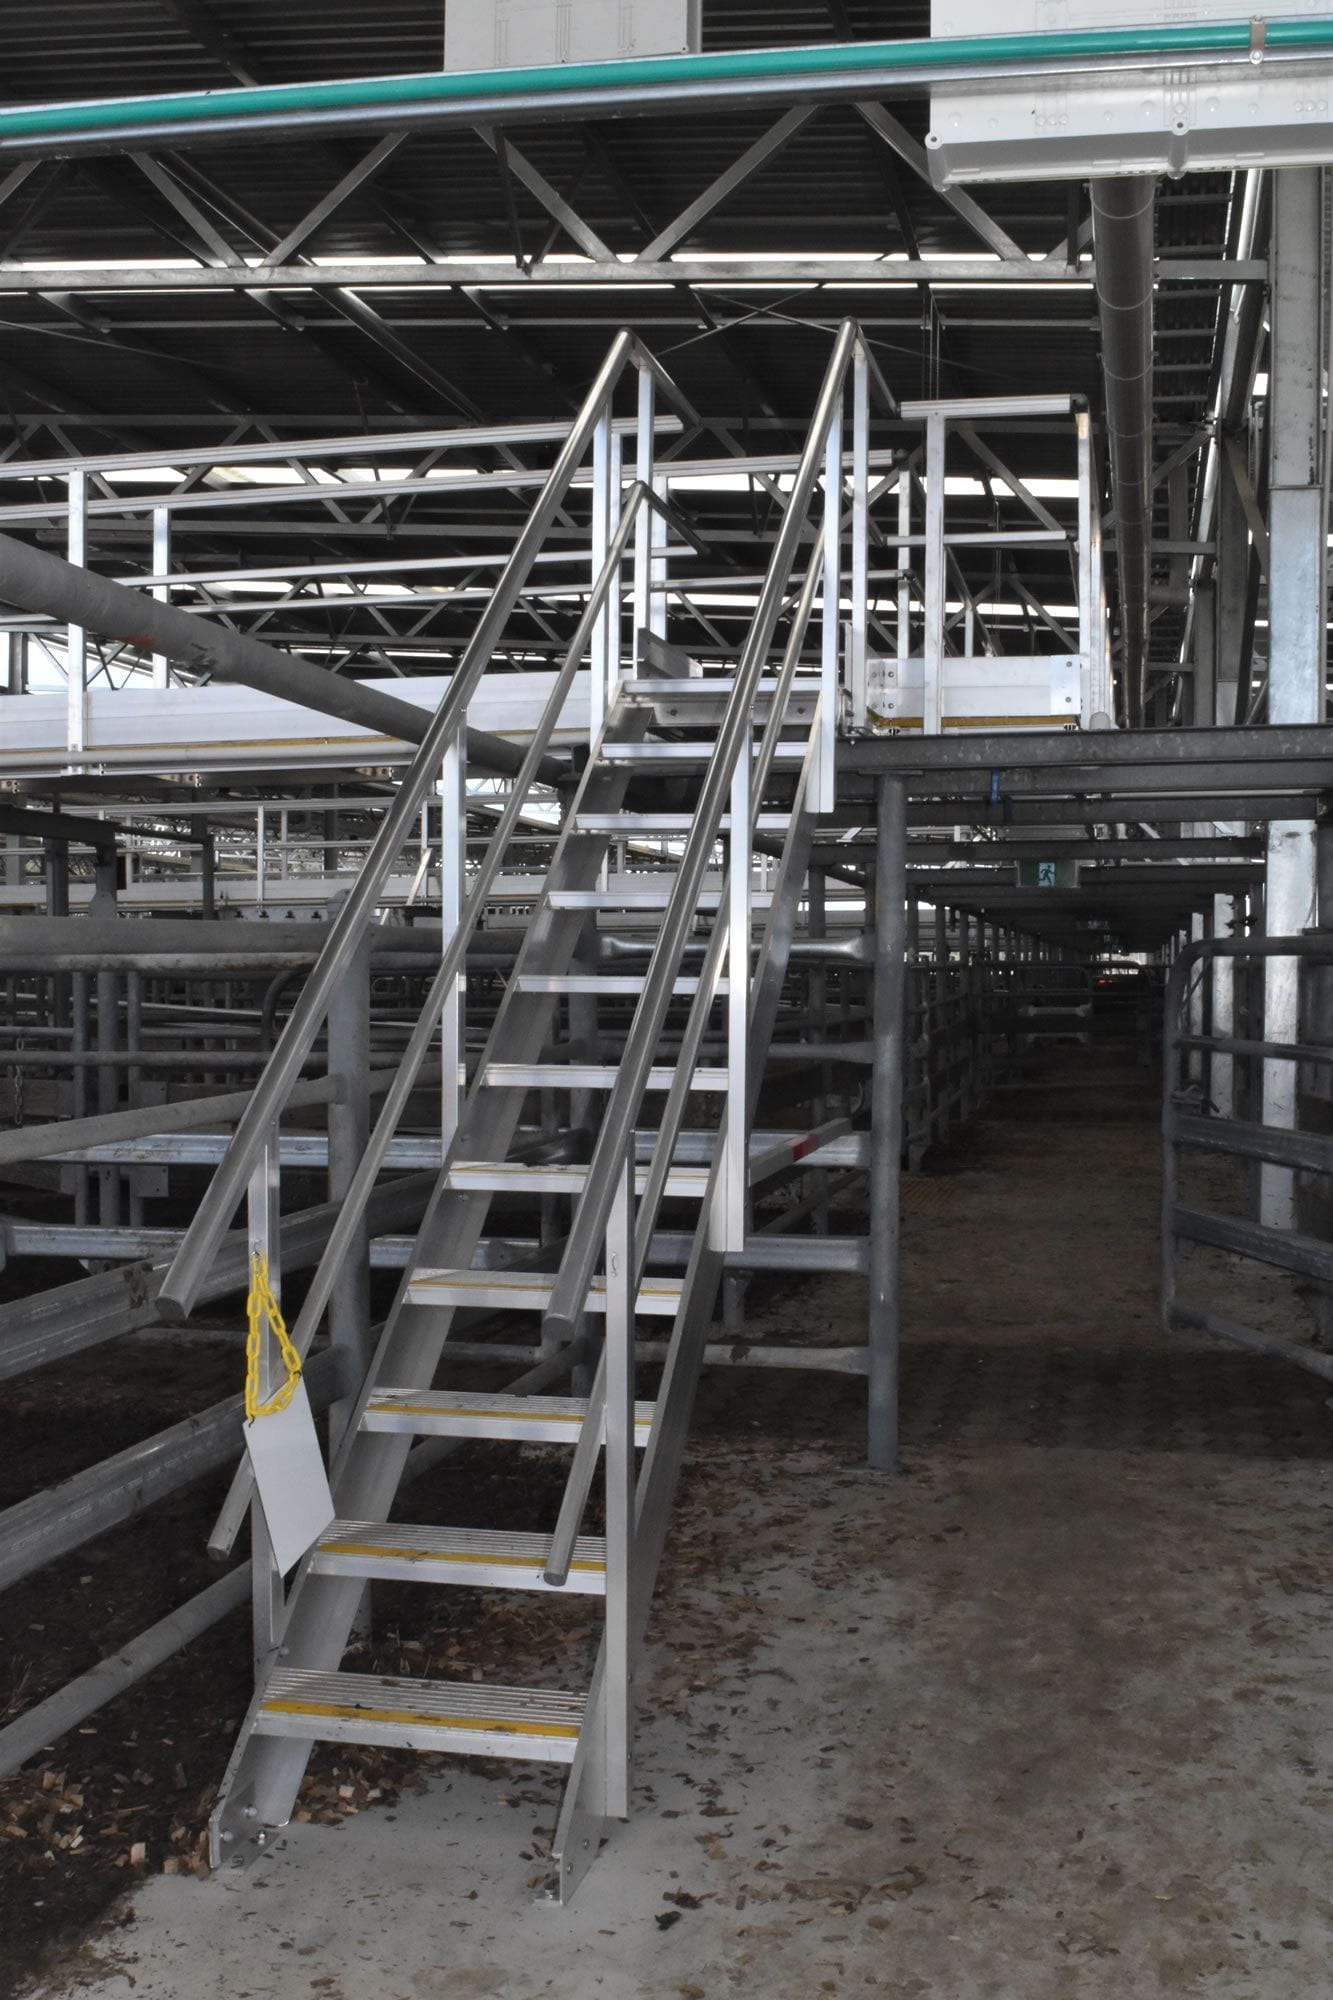 Metal stairway solution for livestock safety